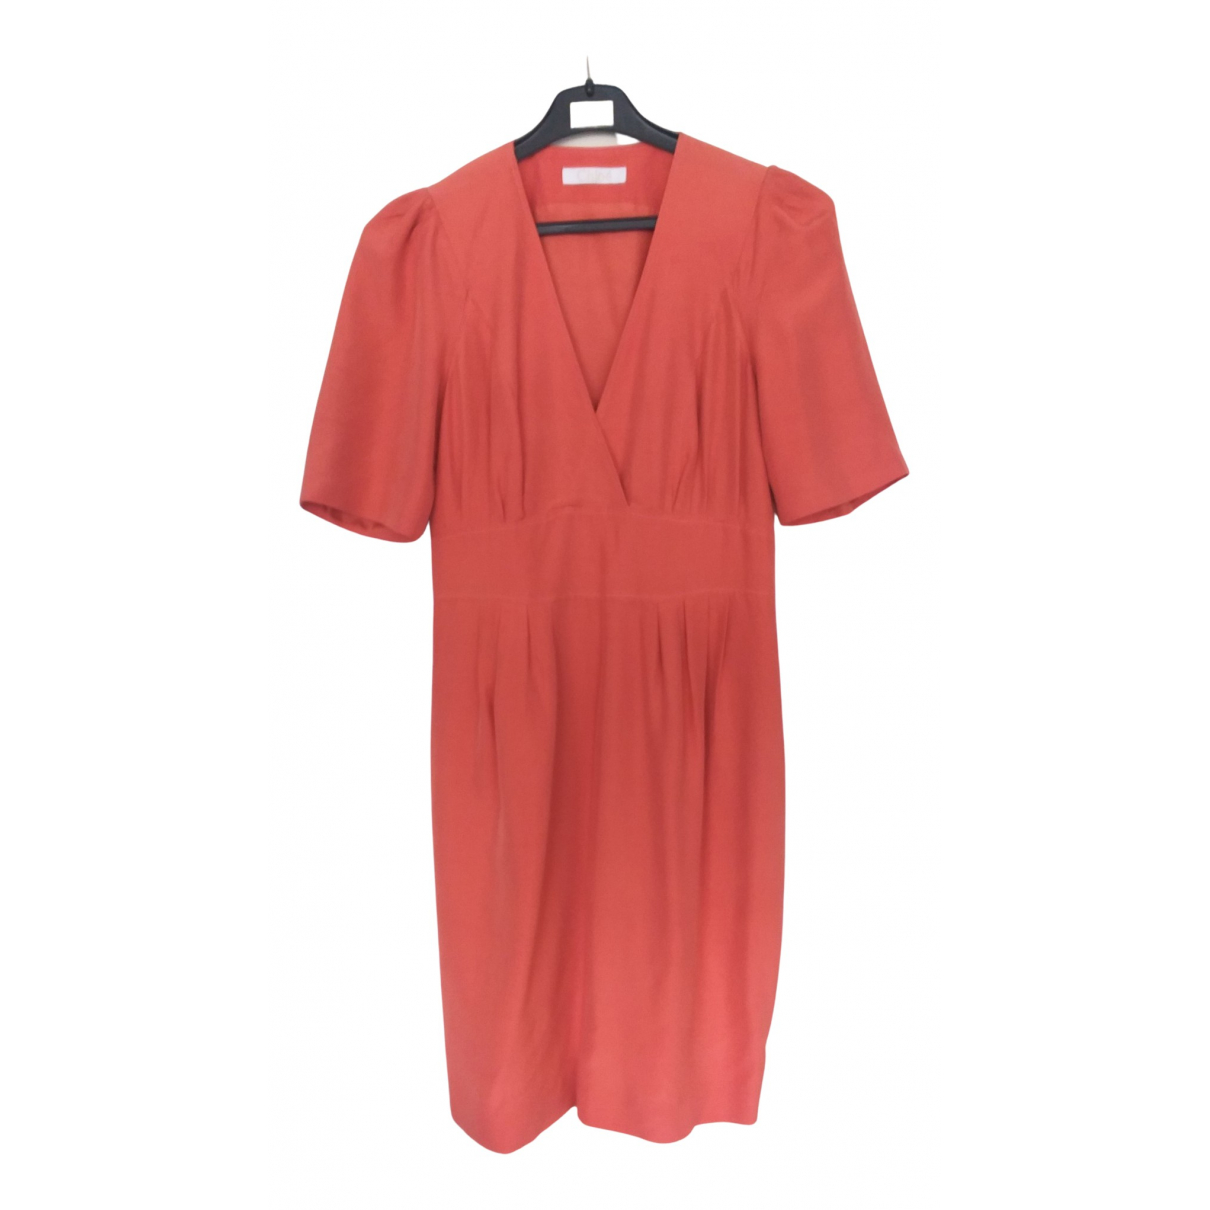 Chloé N Orange Silk dress for Women 40 FR